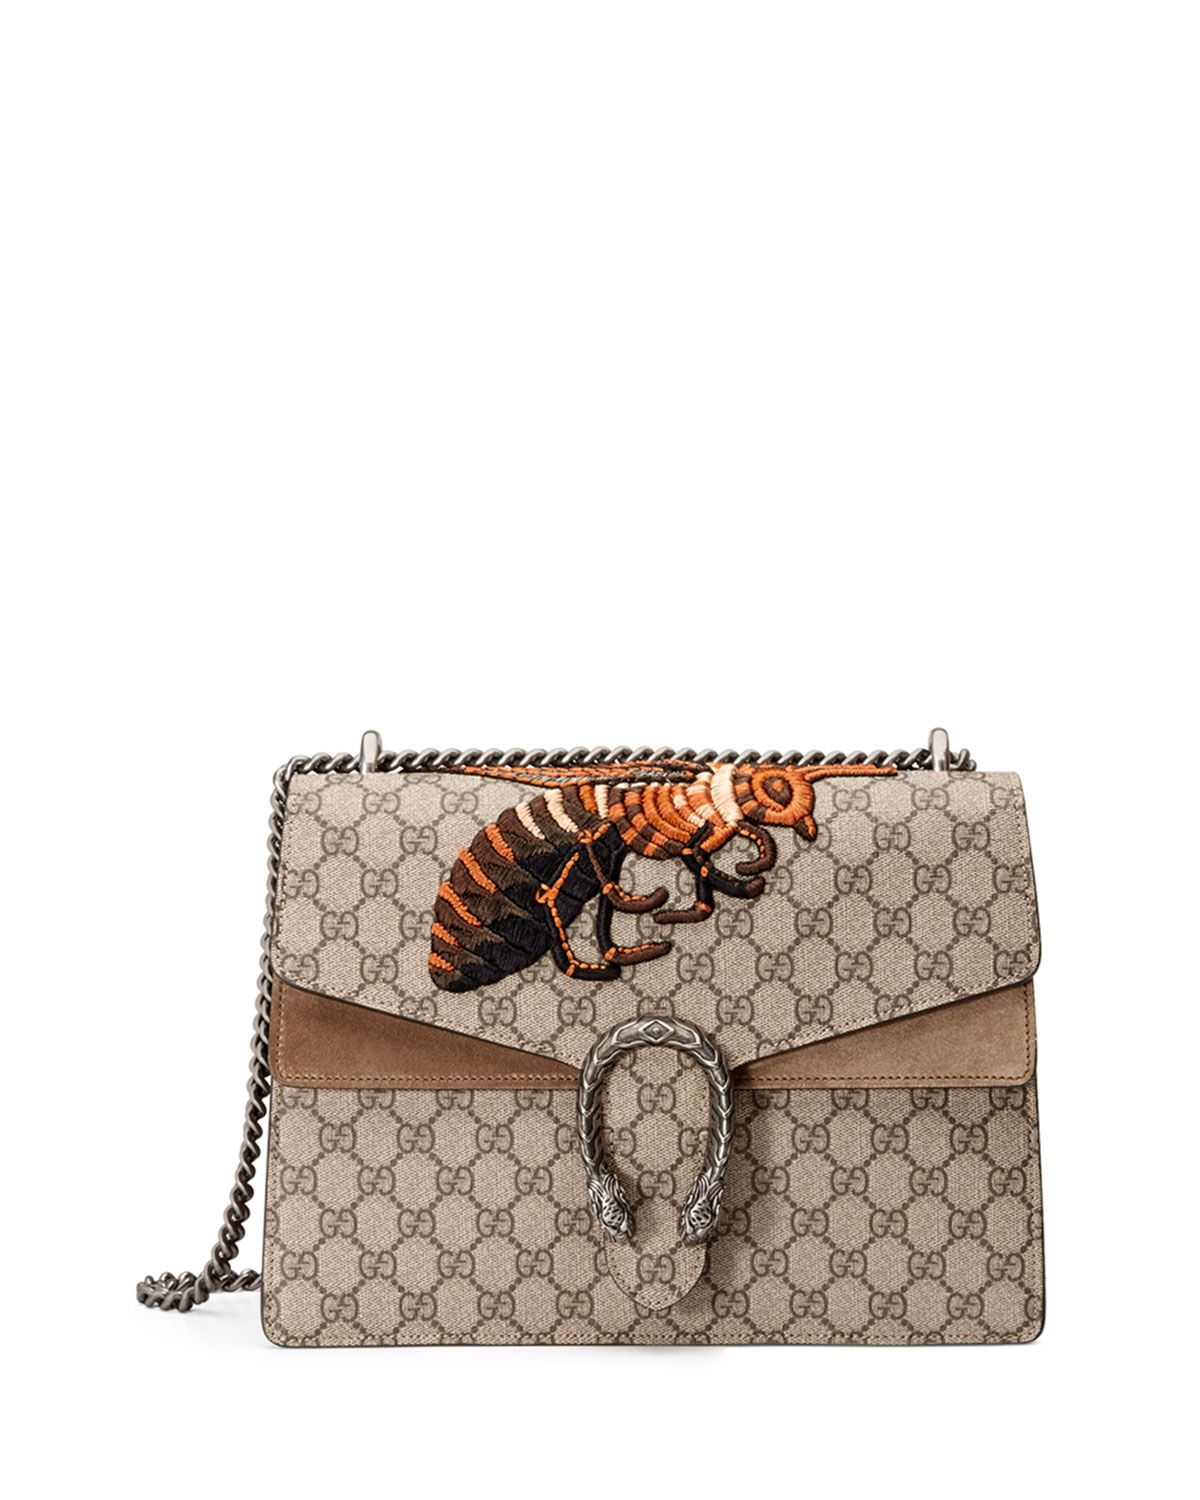 dba0c50ec98 Gucci Dionysus GG Supreme Canvas Embroidered Queen Bee Shoulder Bag ...